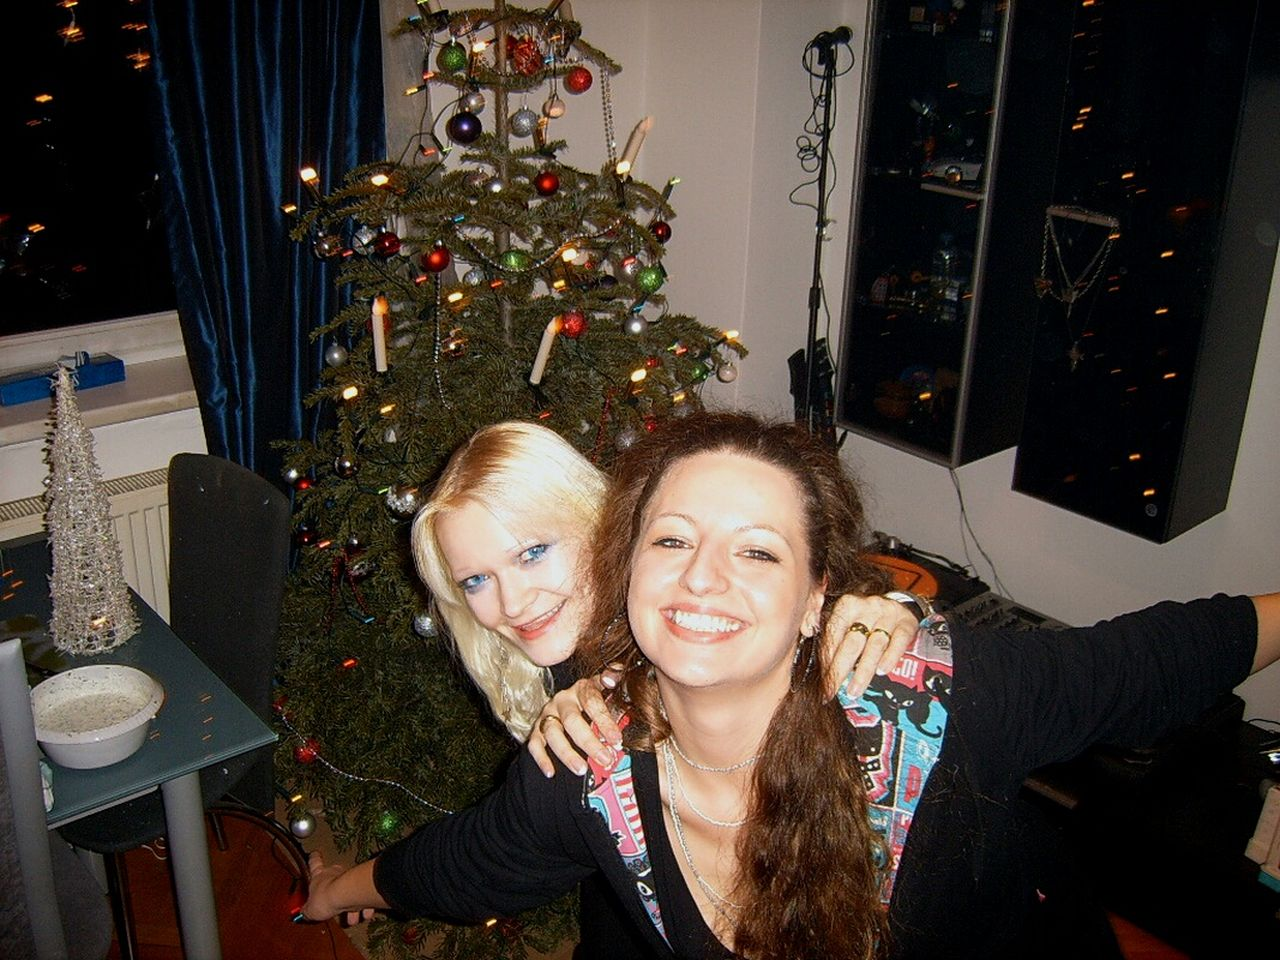 two people, indoors, christmas, front view, christmas tree, celebration, togetherness, smiling, night, real people, blond hair, looking at camera, friendship, technology, young adult, people